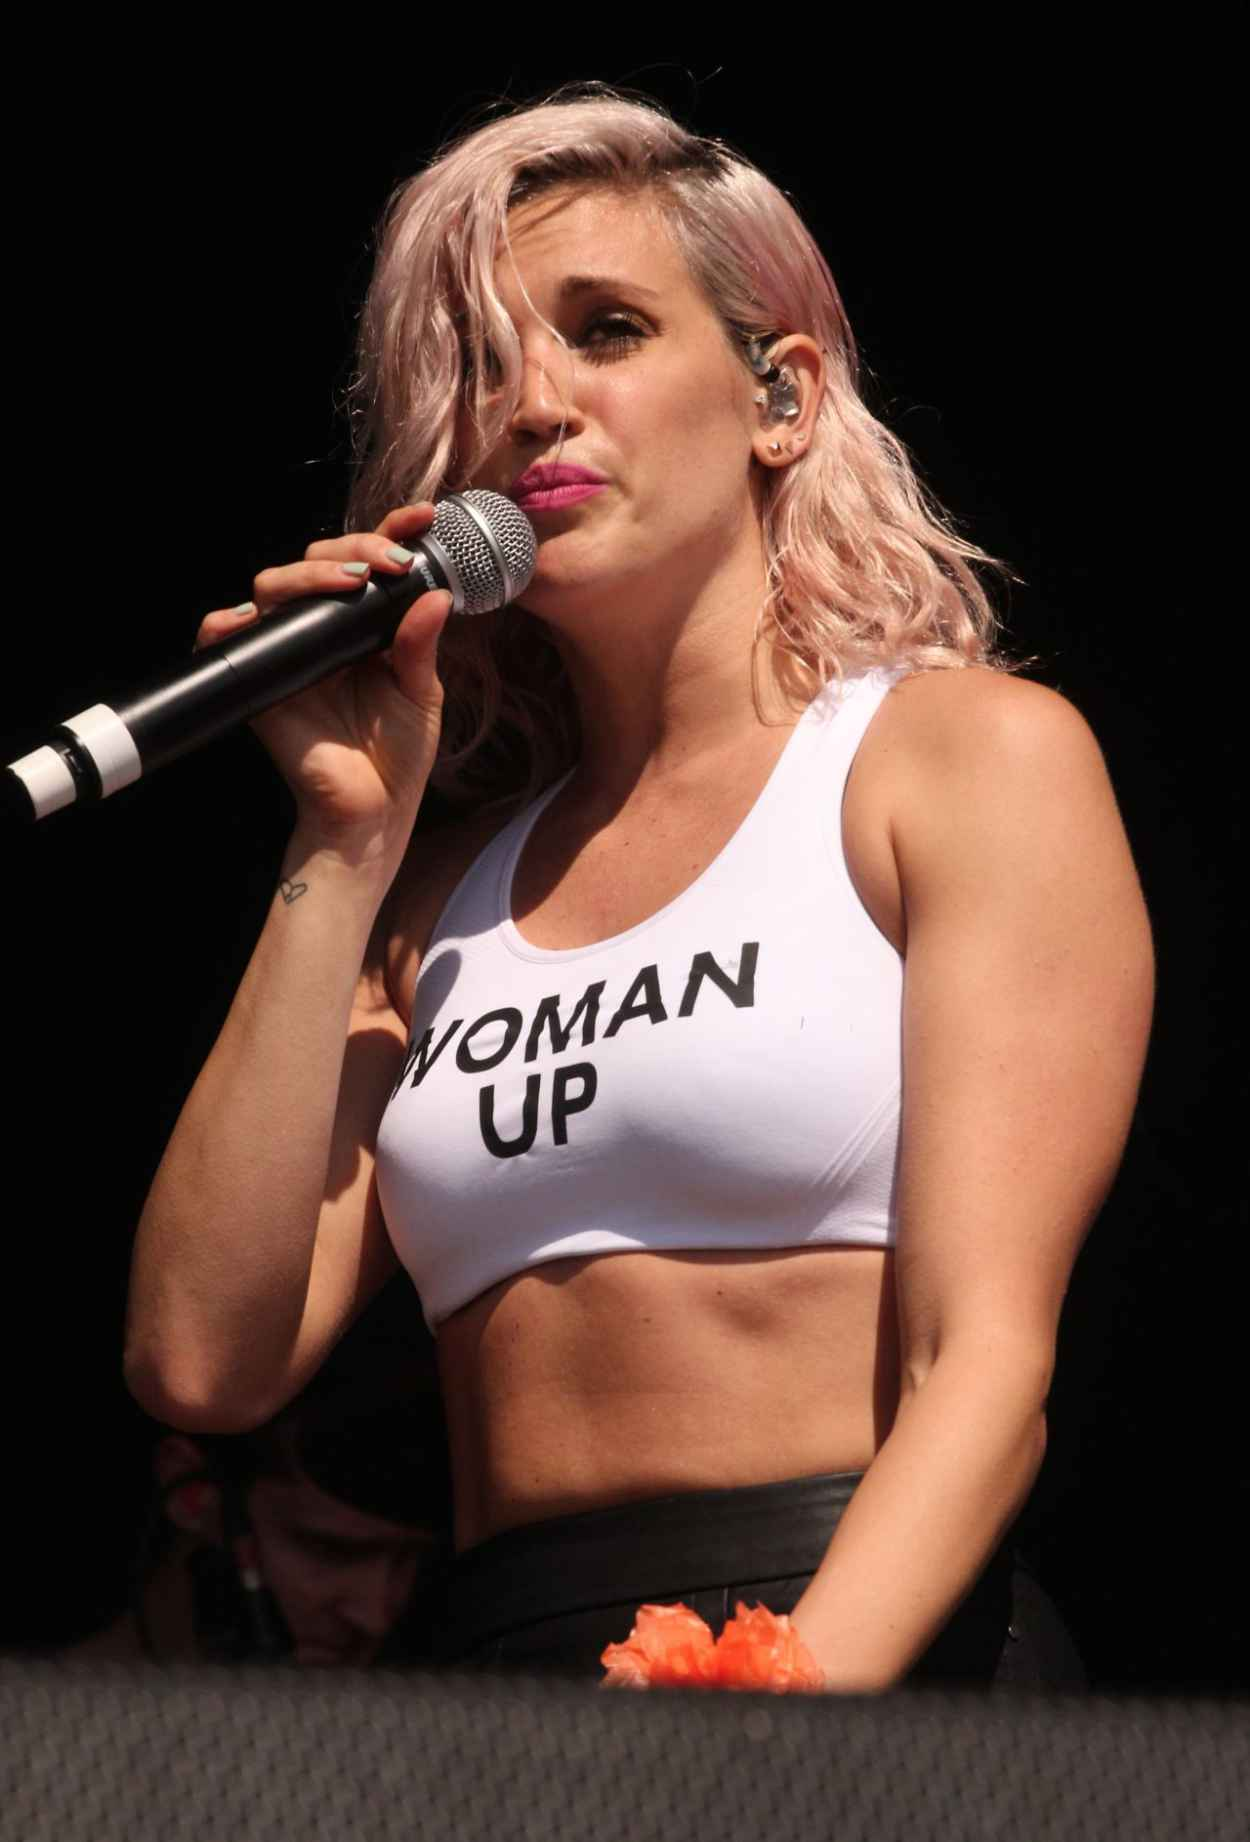 Ashley Roberts Performs at Guilfest Festival in Gulidford (UK) - July 2015-1